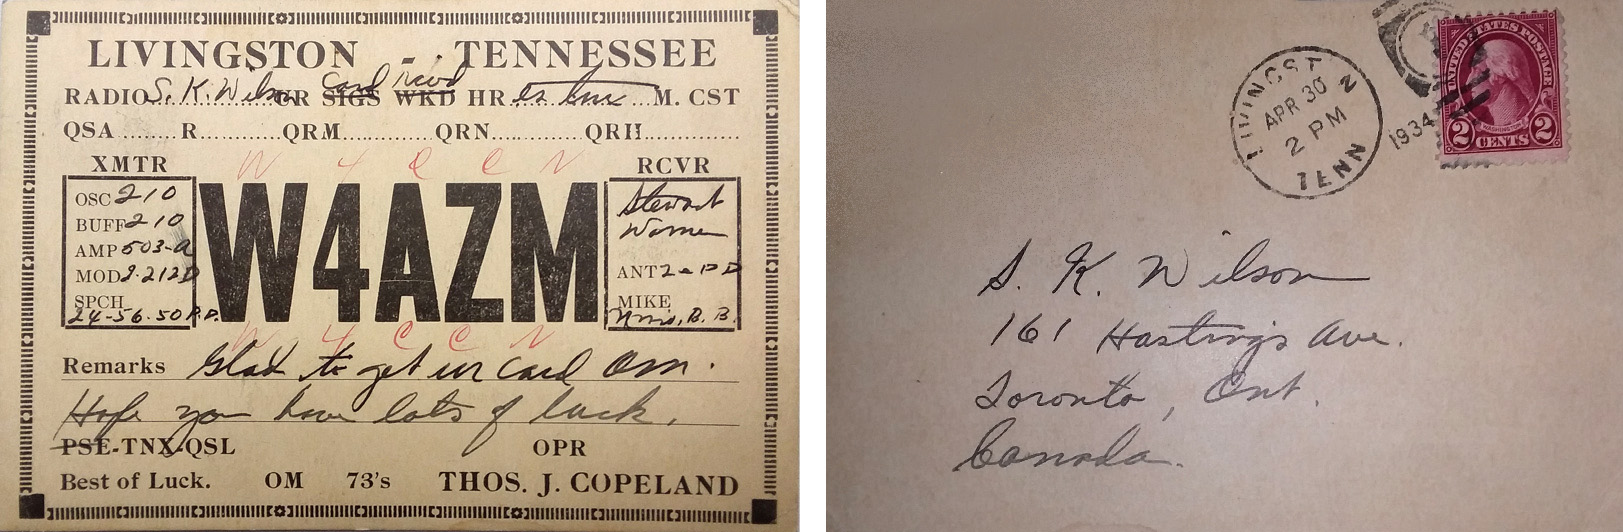 1934 QSL Card from the original W4AZM